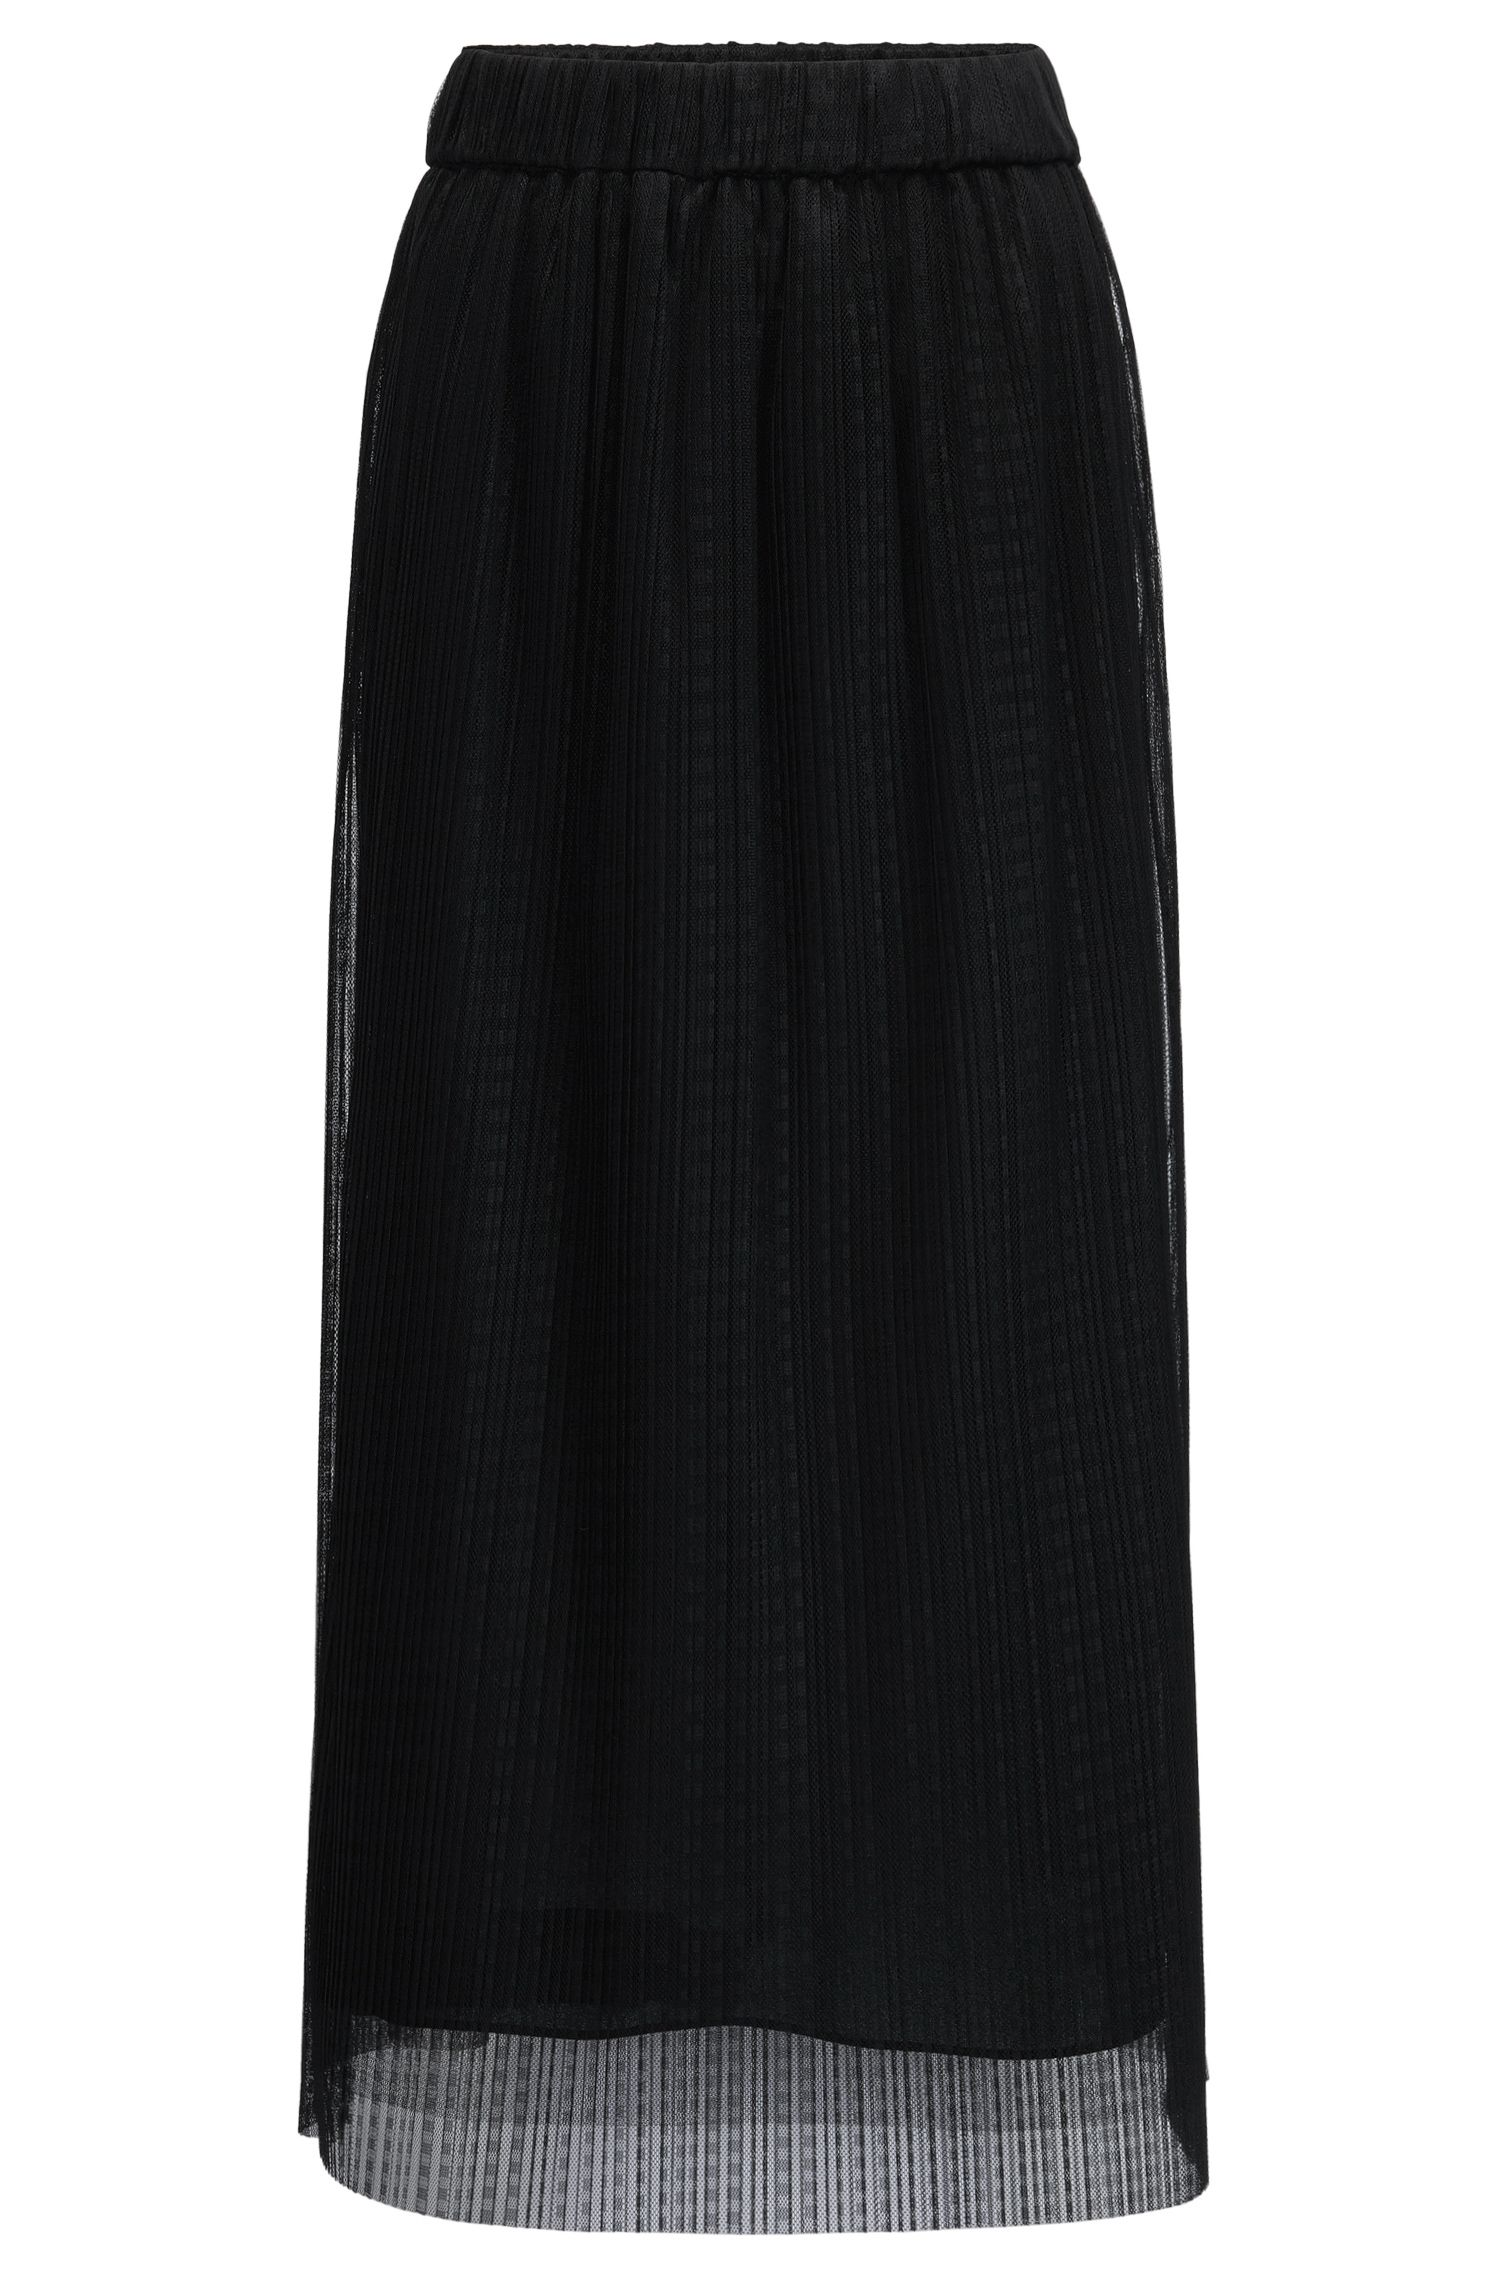 Midi-length skirt in layered tulle